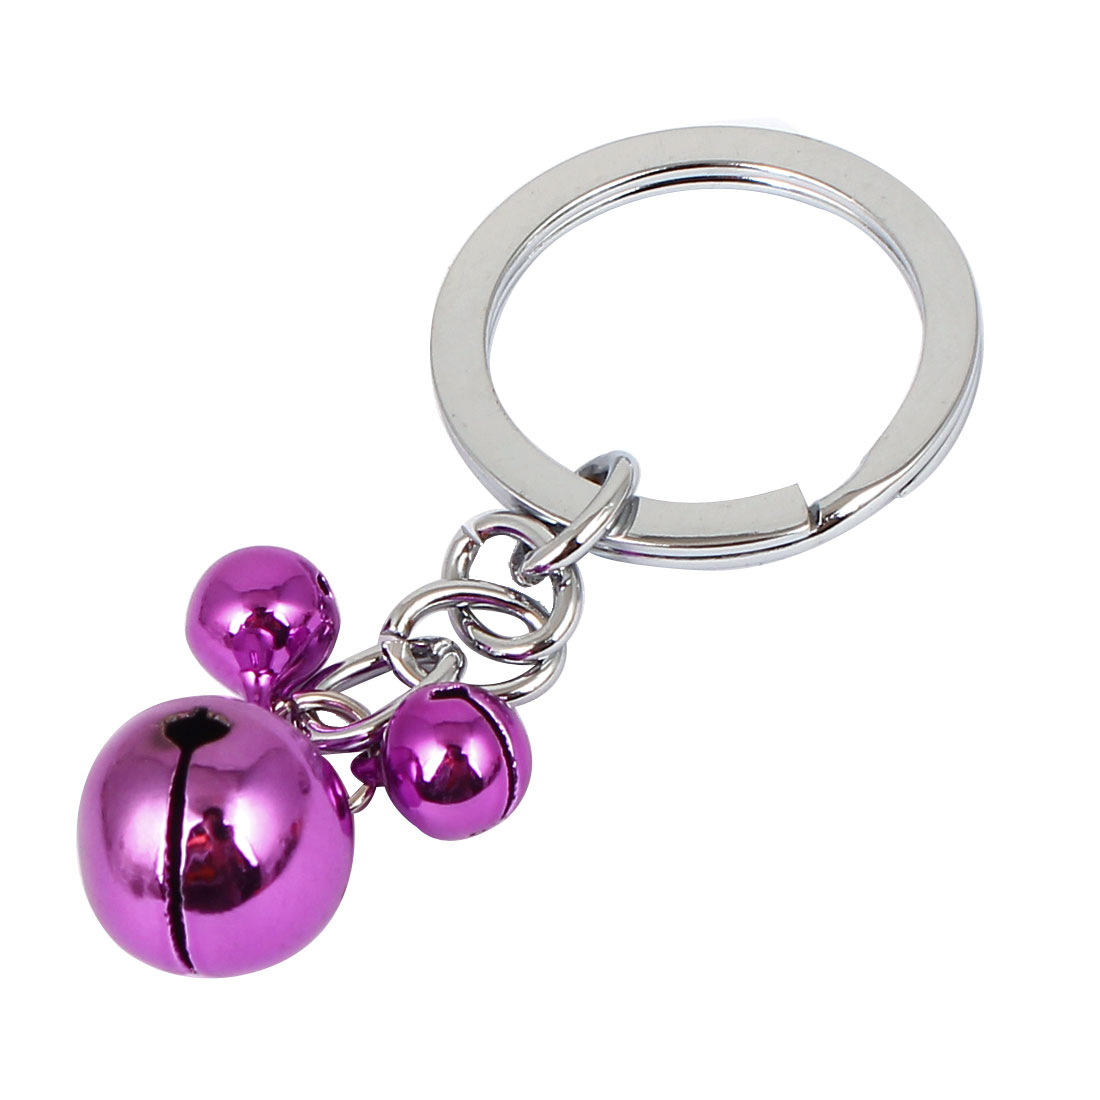 Metal Mouse Shape Pendant Ring Bell Chain Keyring Bag Decor Fuchsia